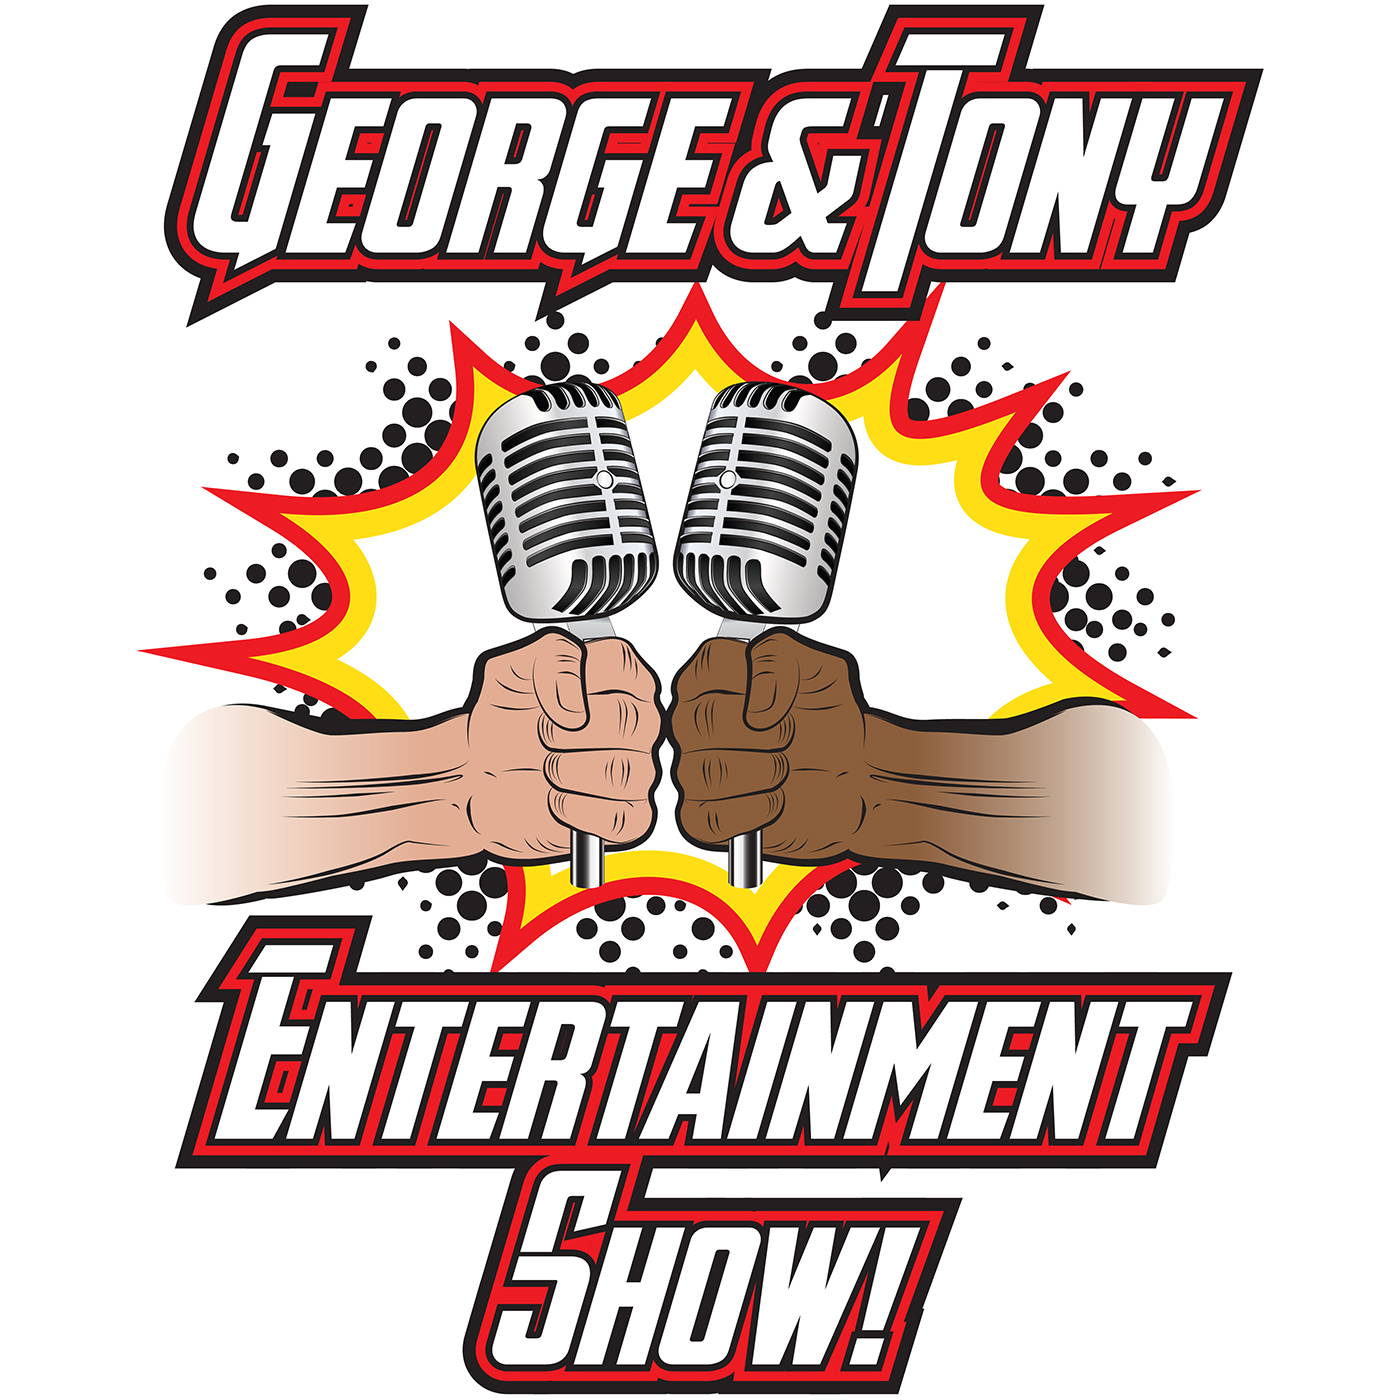 George and Tony Entertainment Show #138